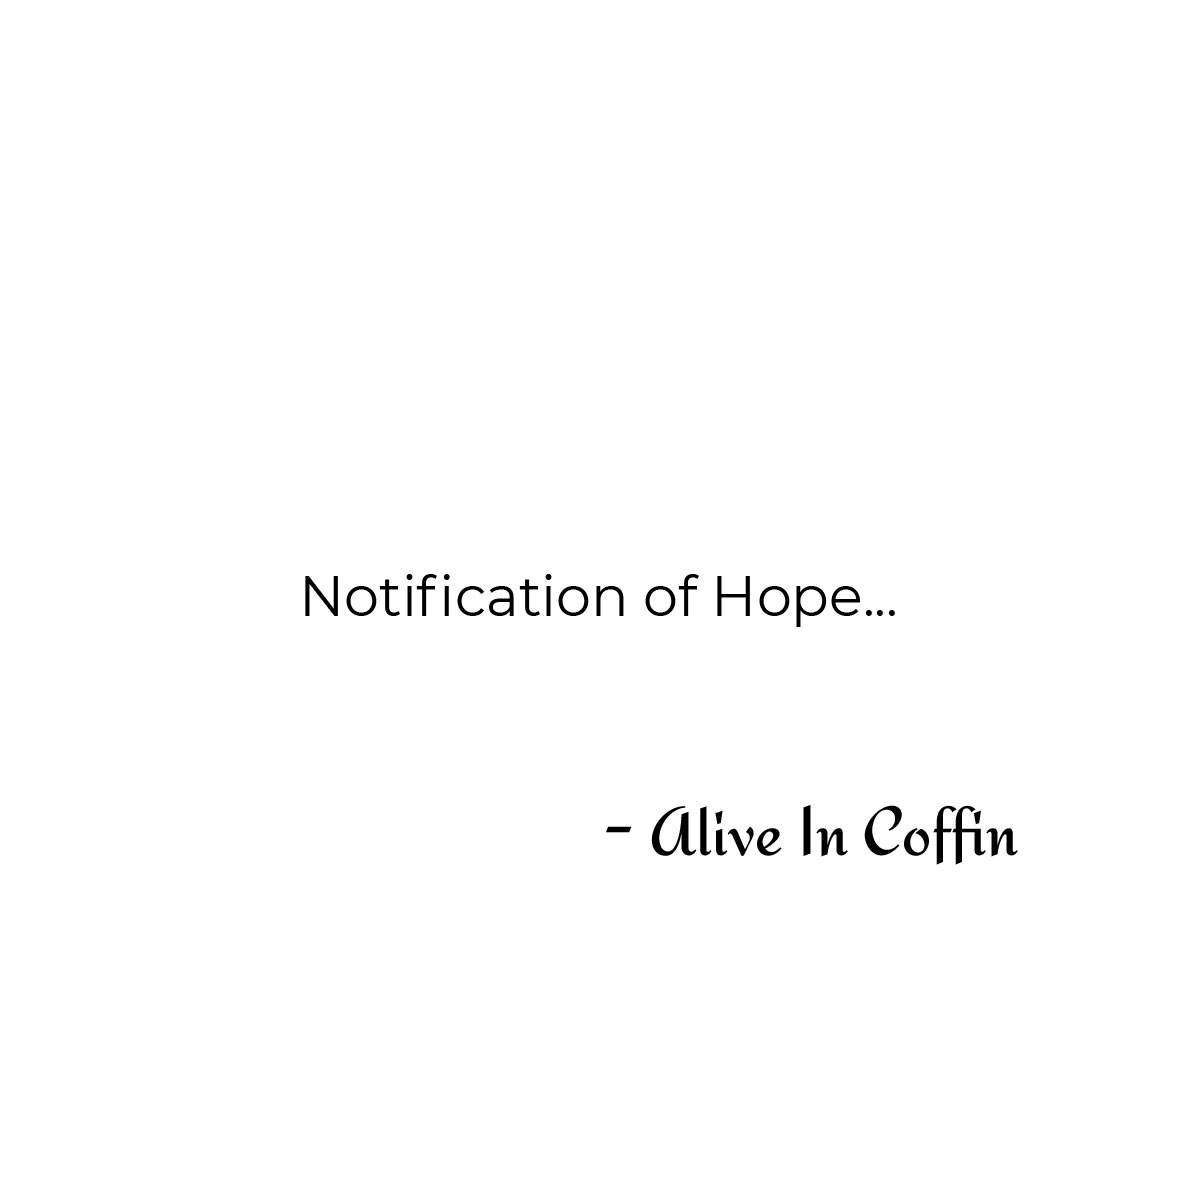 Poem about notification and hope.